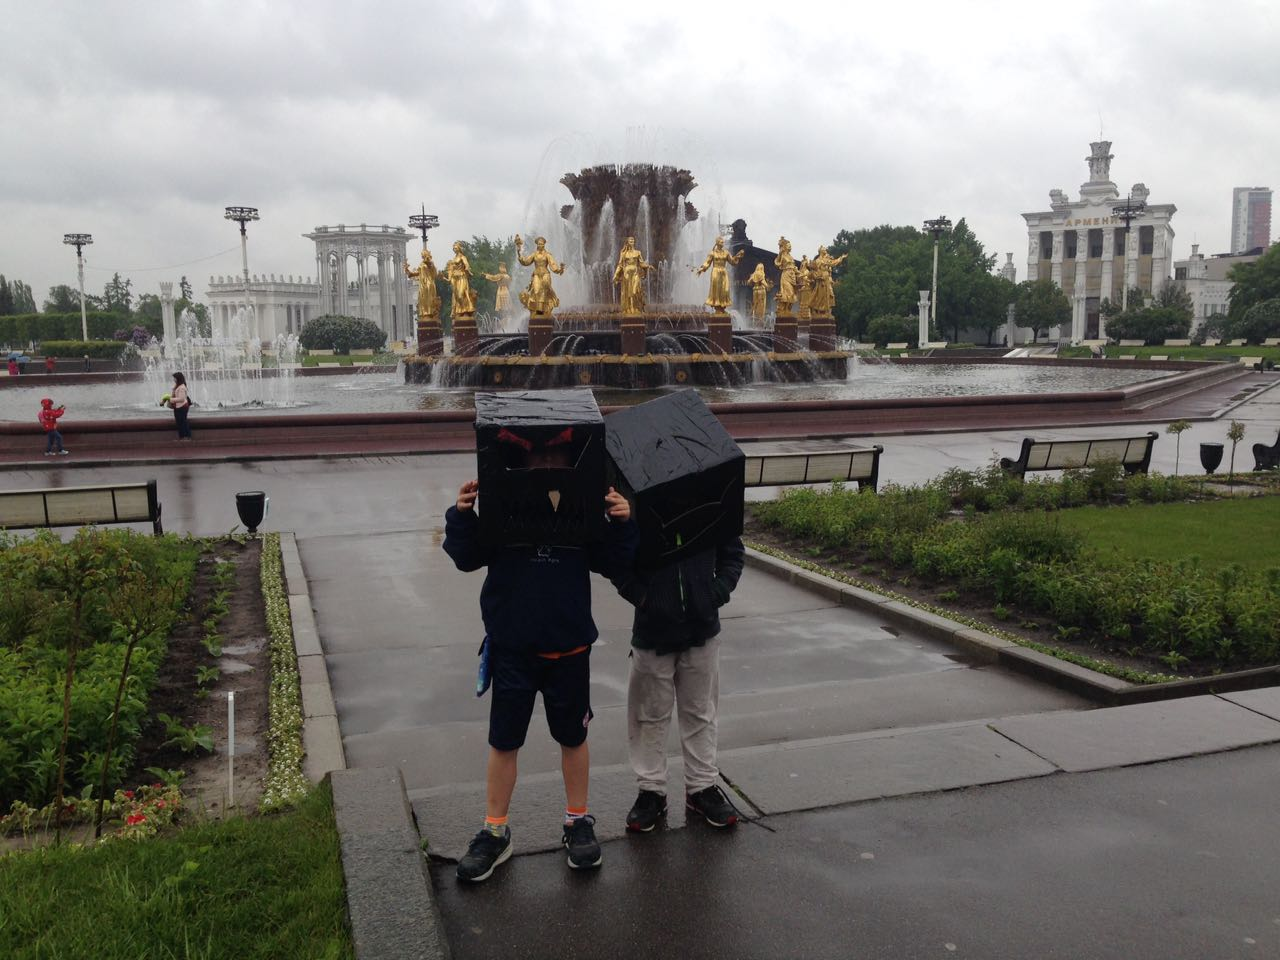 Kids in Moscow